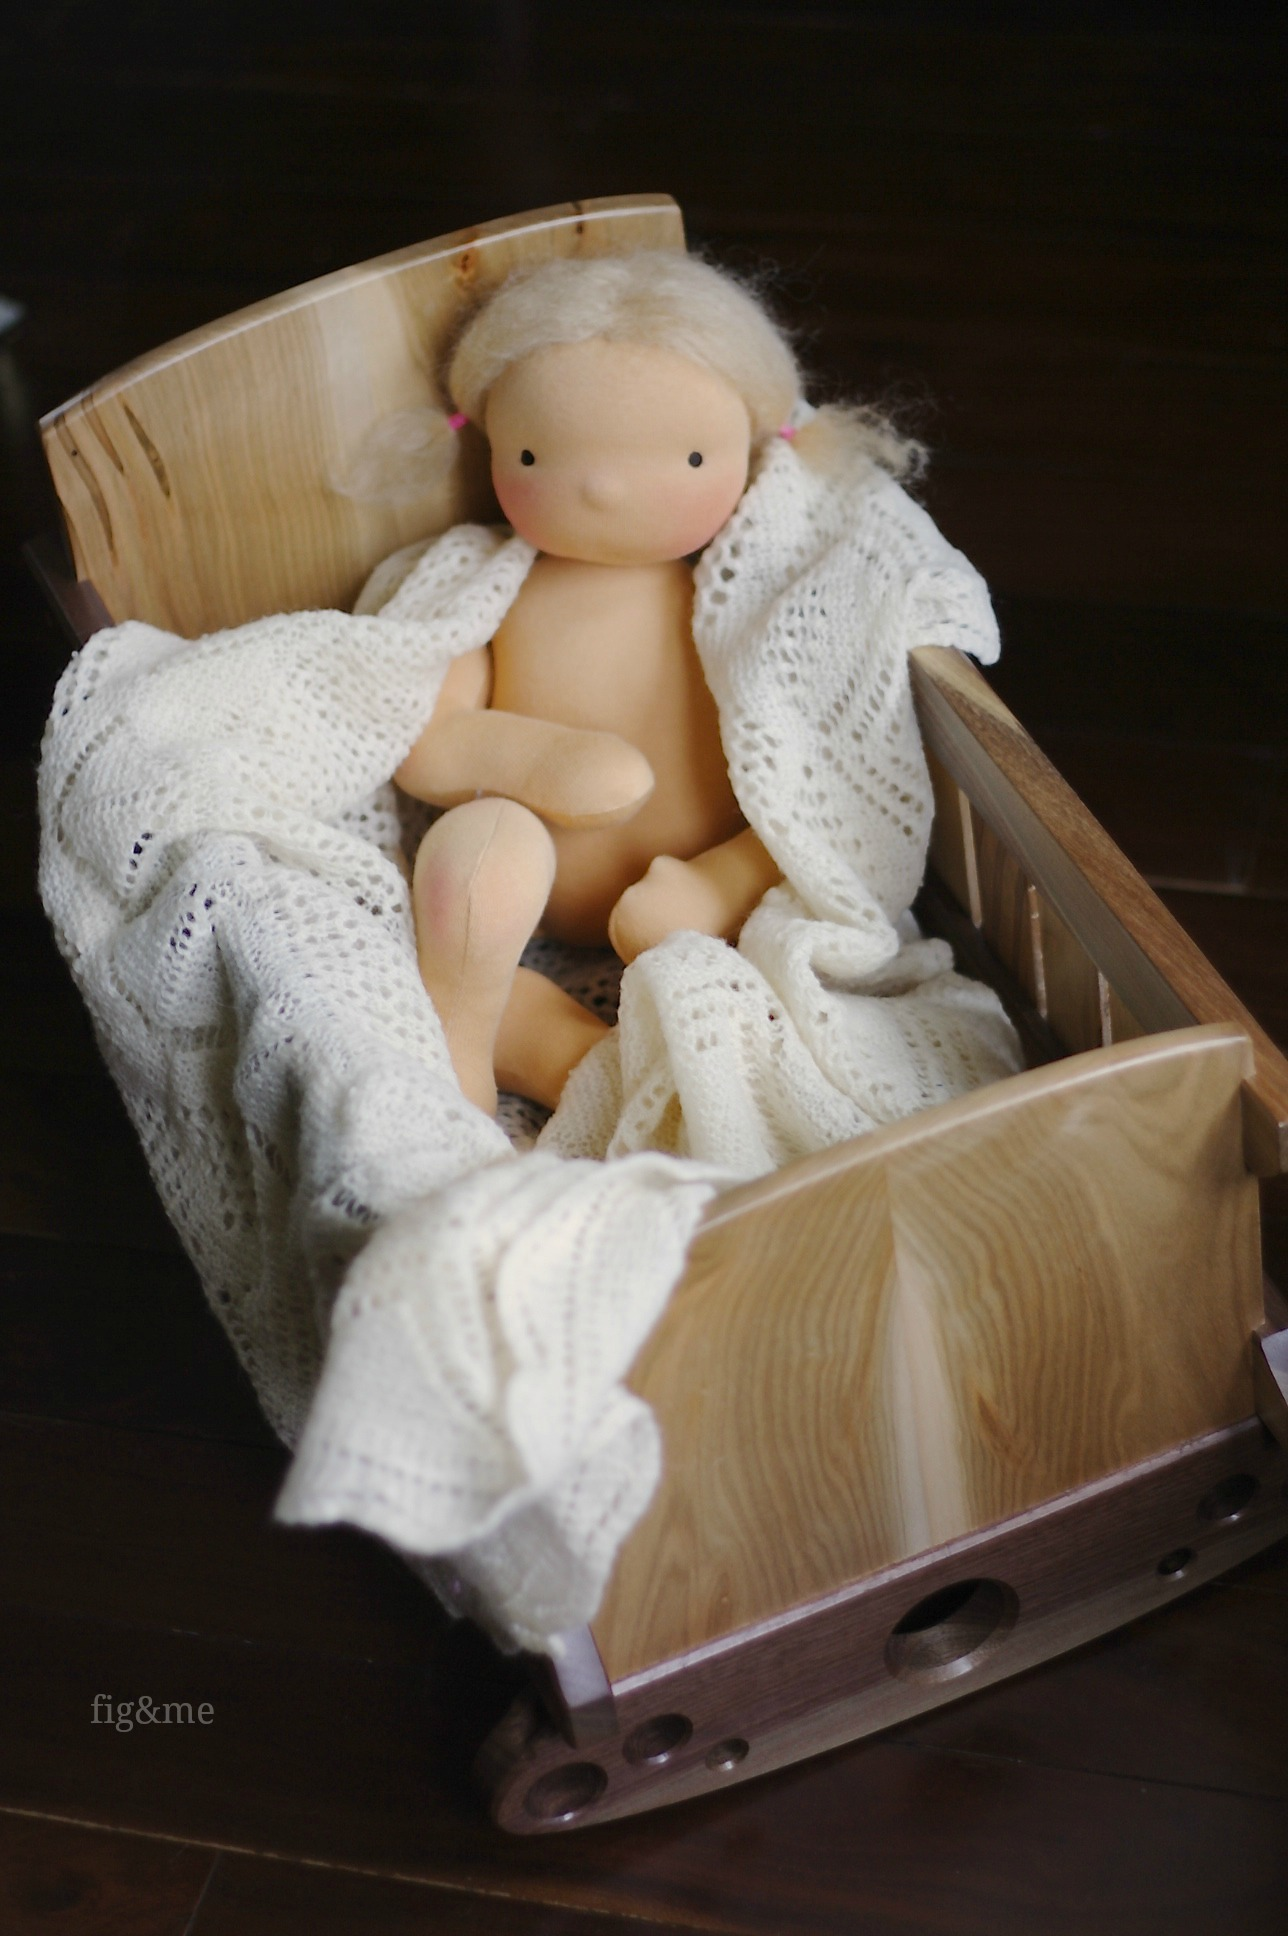 Walnut and ambrosia maple doll crib, by Fig&me